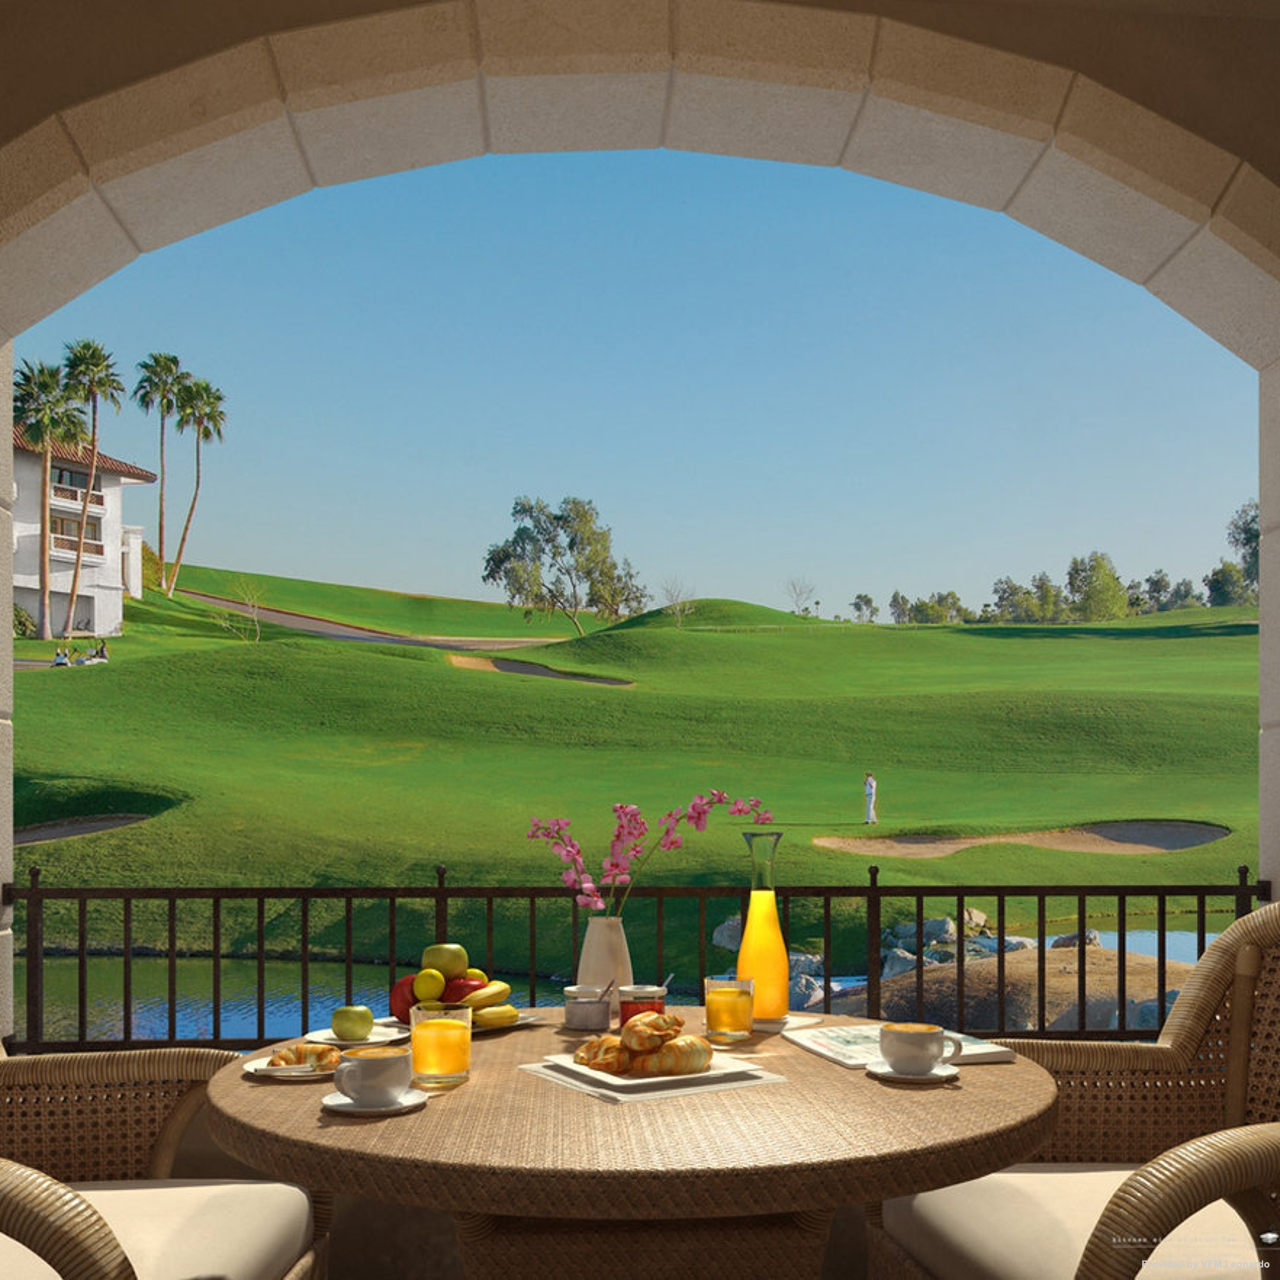 Hotel Arizona Grand Resort And Spa United States Of America At Hrs With Free Services